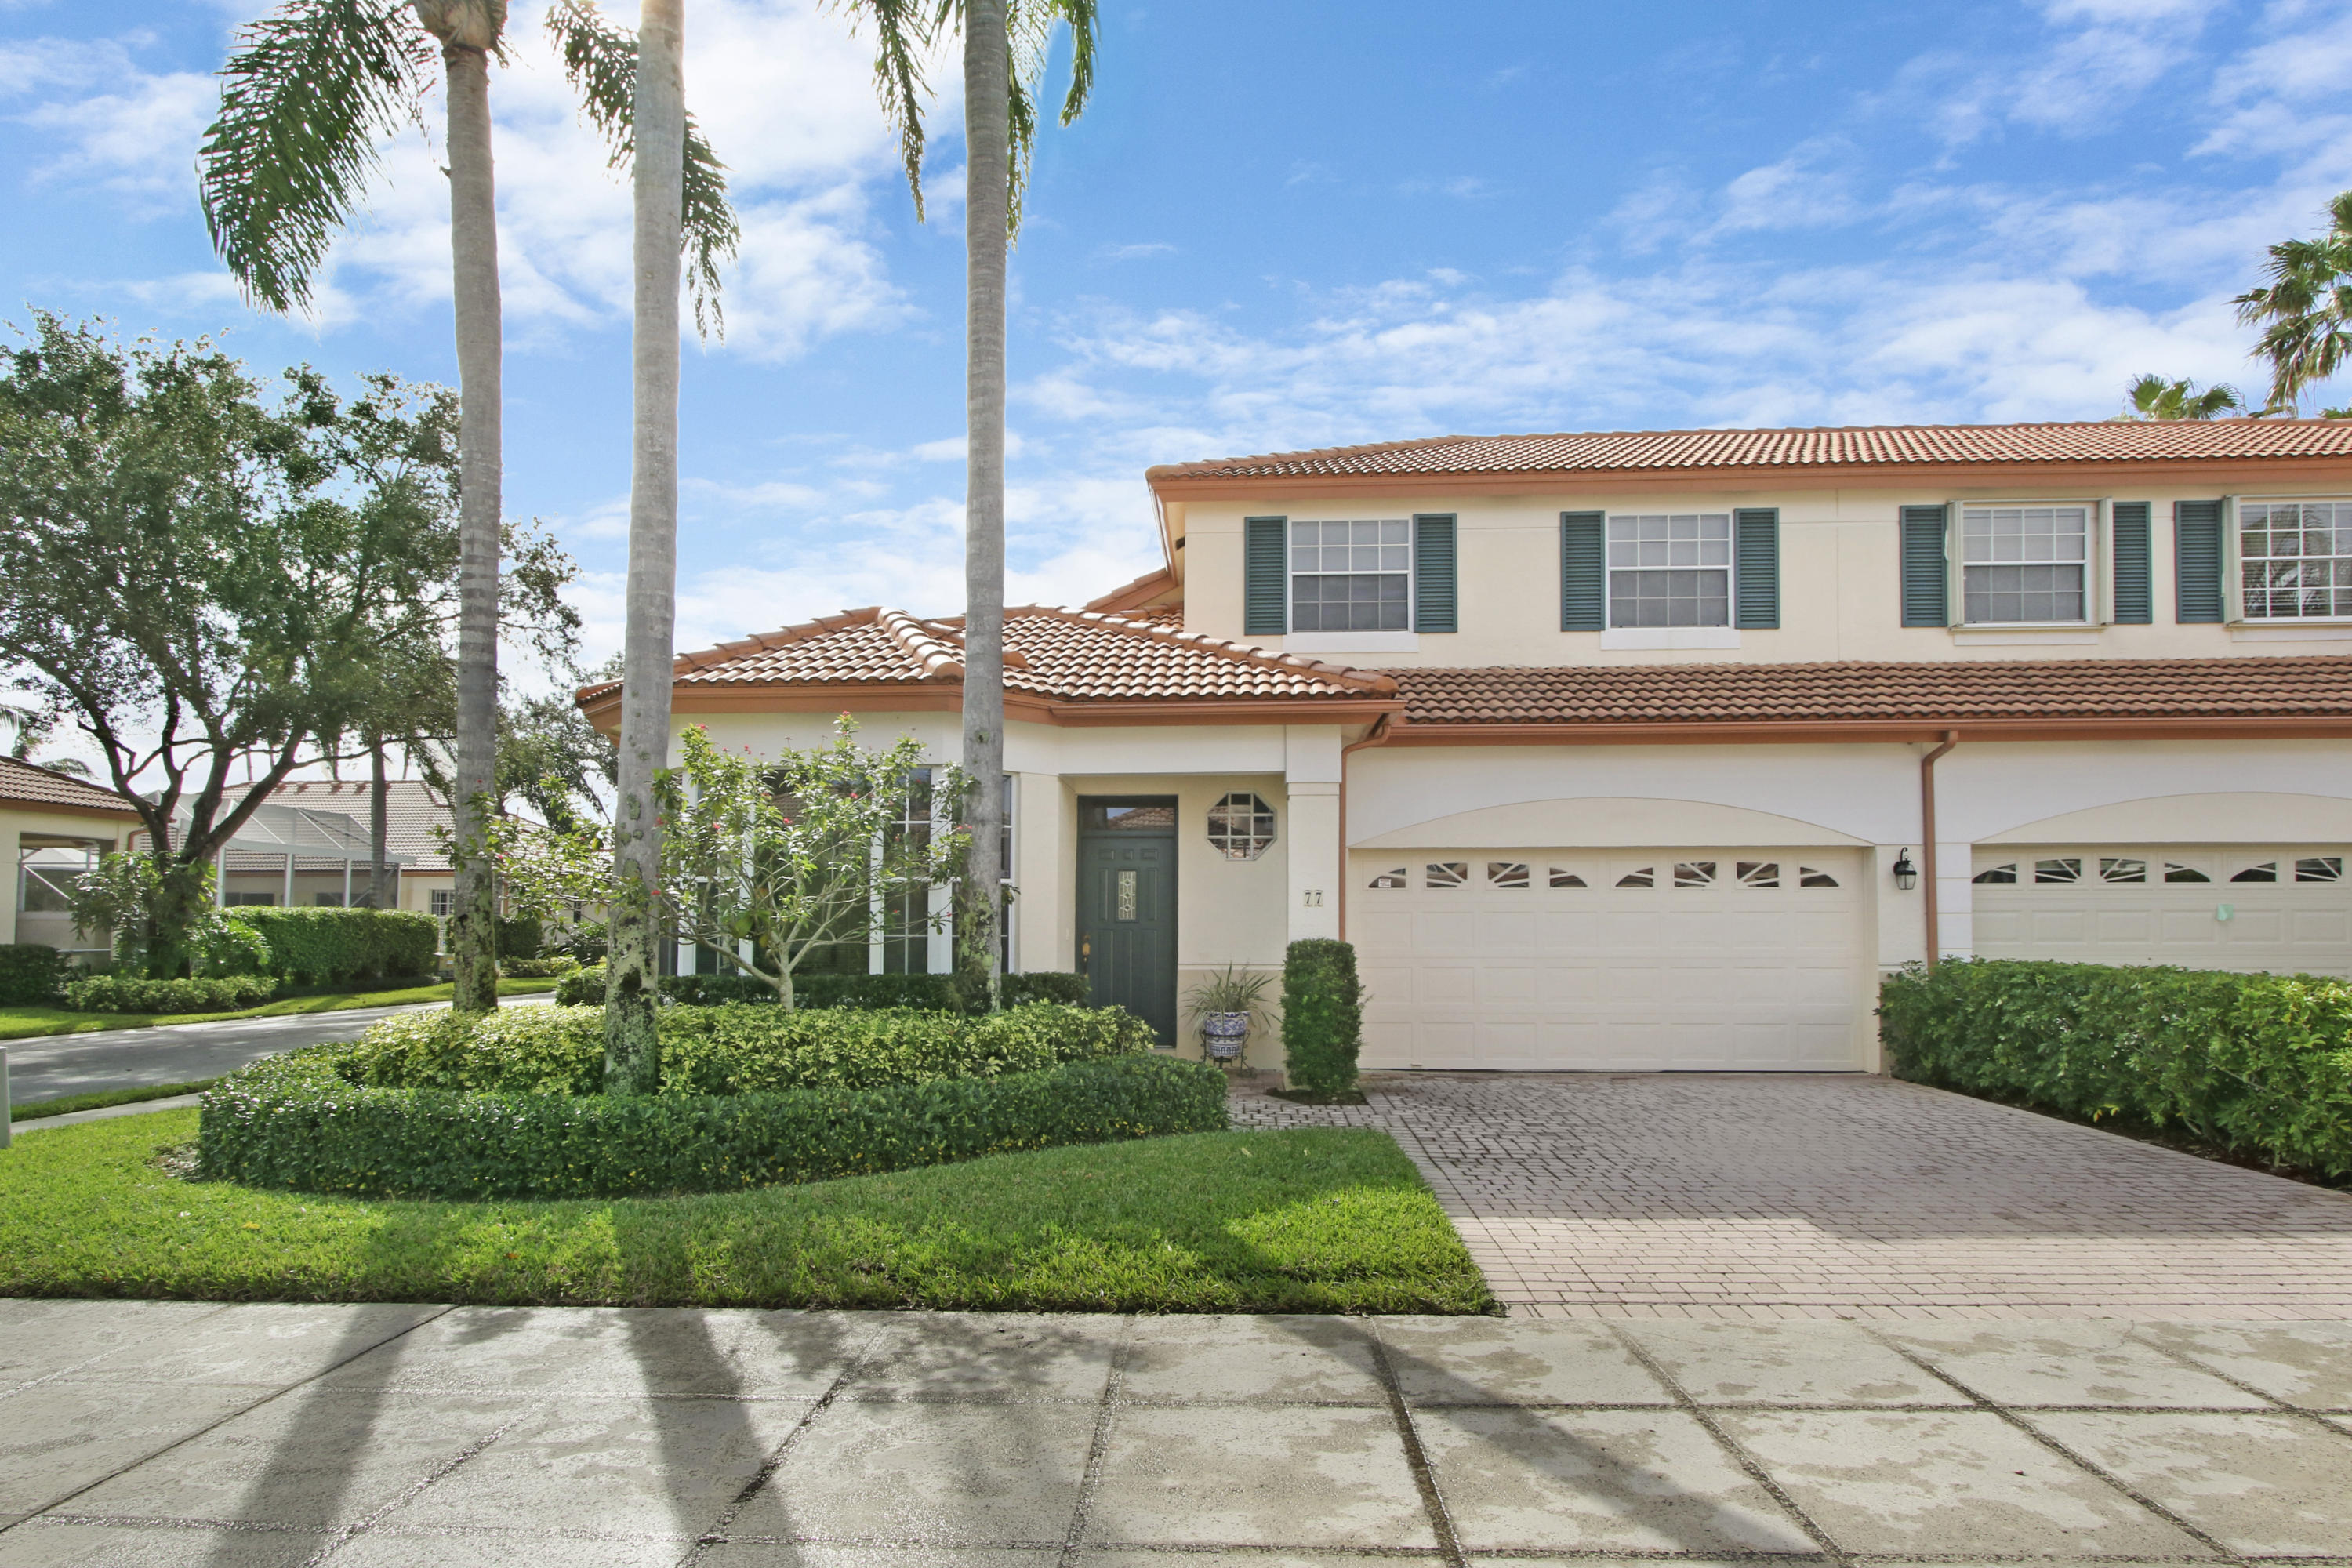 77 Spyglass Way, Palm Beach Gardens, Florida 33418, 3 Bedrooms Bedrooms, ,2.1 BathroomsBathrooms,Townhouse,For Rent,PGA National,Spyglass,1,RX-10383945